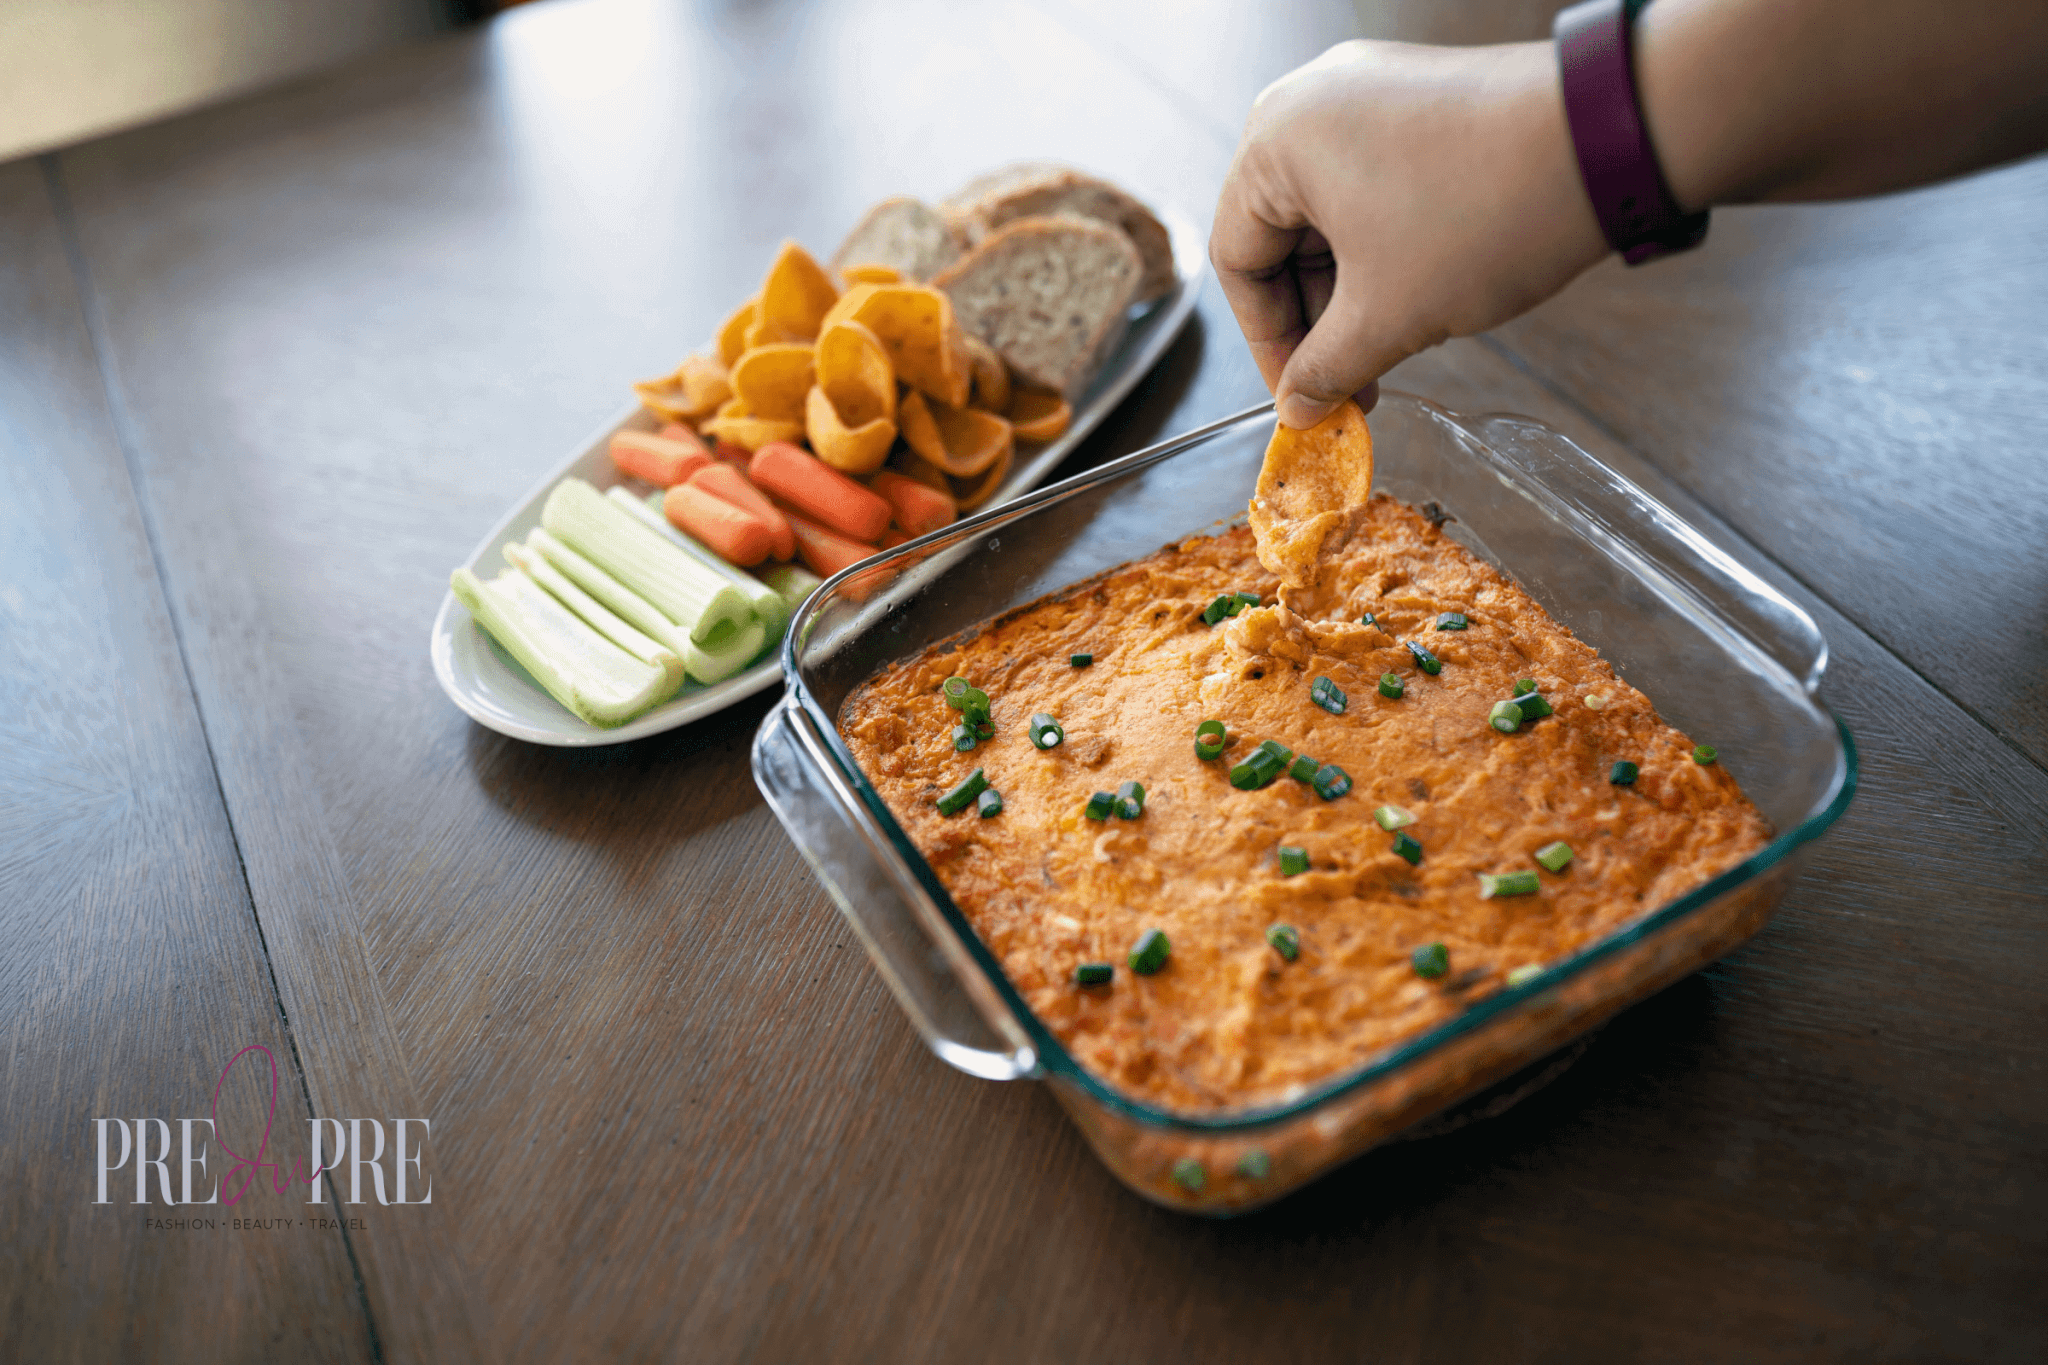 lady's hand with corn chip scoop dipping into chicken buffalo dip